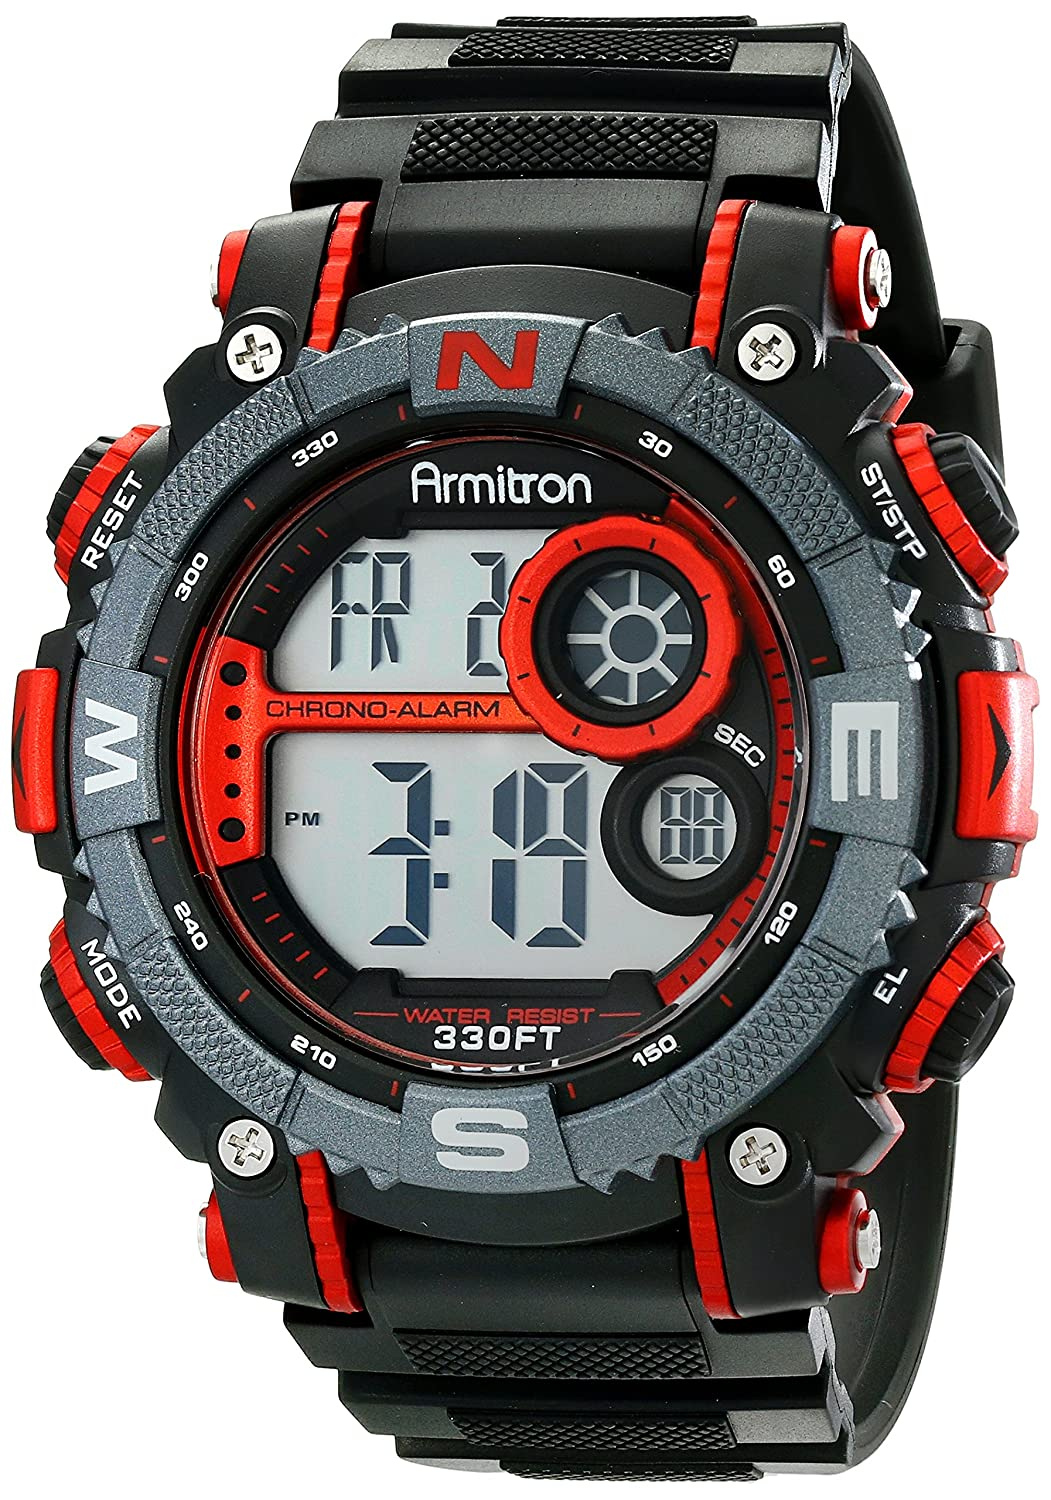 Armitron sport mens 408284red large metallic red accented black armitron sport mens 408284red large metallic red accented black resin strap chronograph digital watch amazon watches fandeluxe Gallery